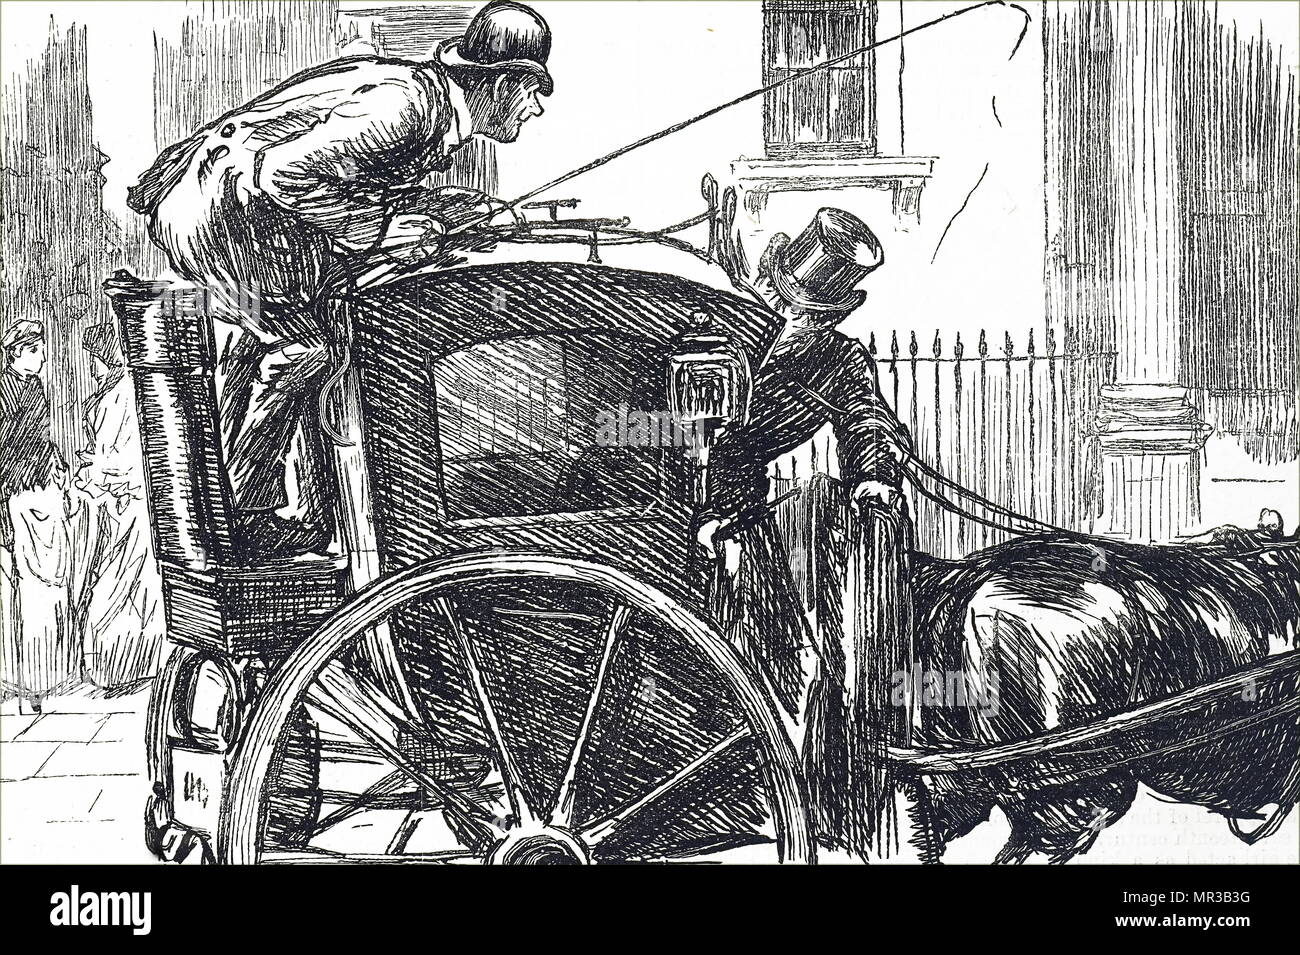 Illustration depicting an early Hackney Carriage, showing the driver's position behind and overlooking the passenger seat. Dated 19th century - Stock Image